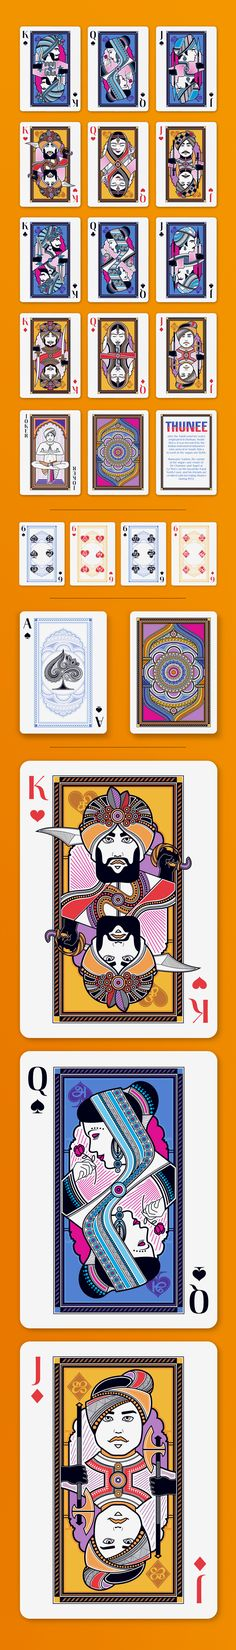 The Thunee Deck - Bicycle® Playing Cards Deck by Trumpmen — Kickstarter {pinner has page full of ideas}